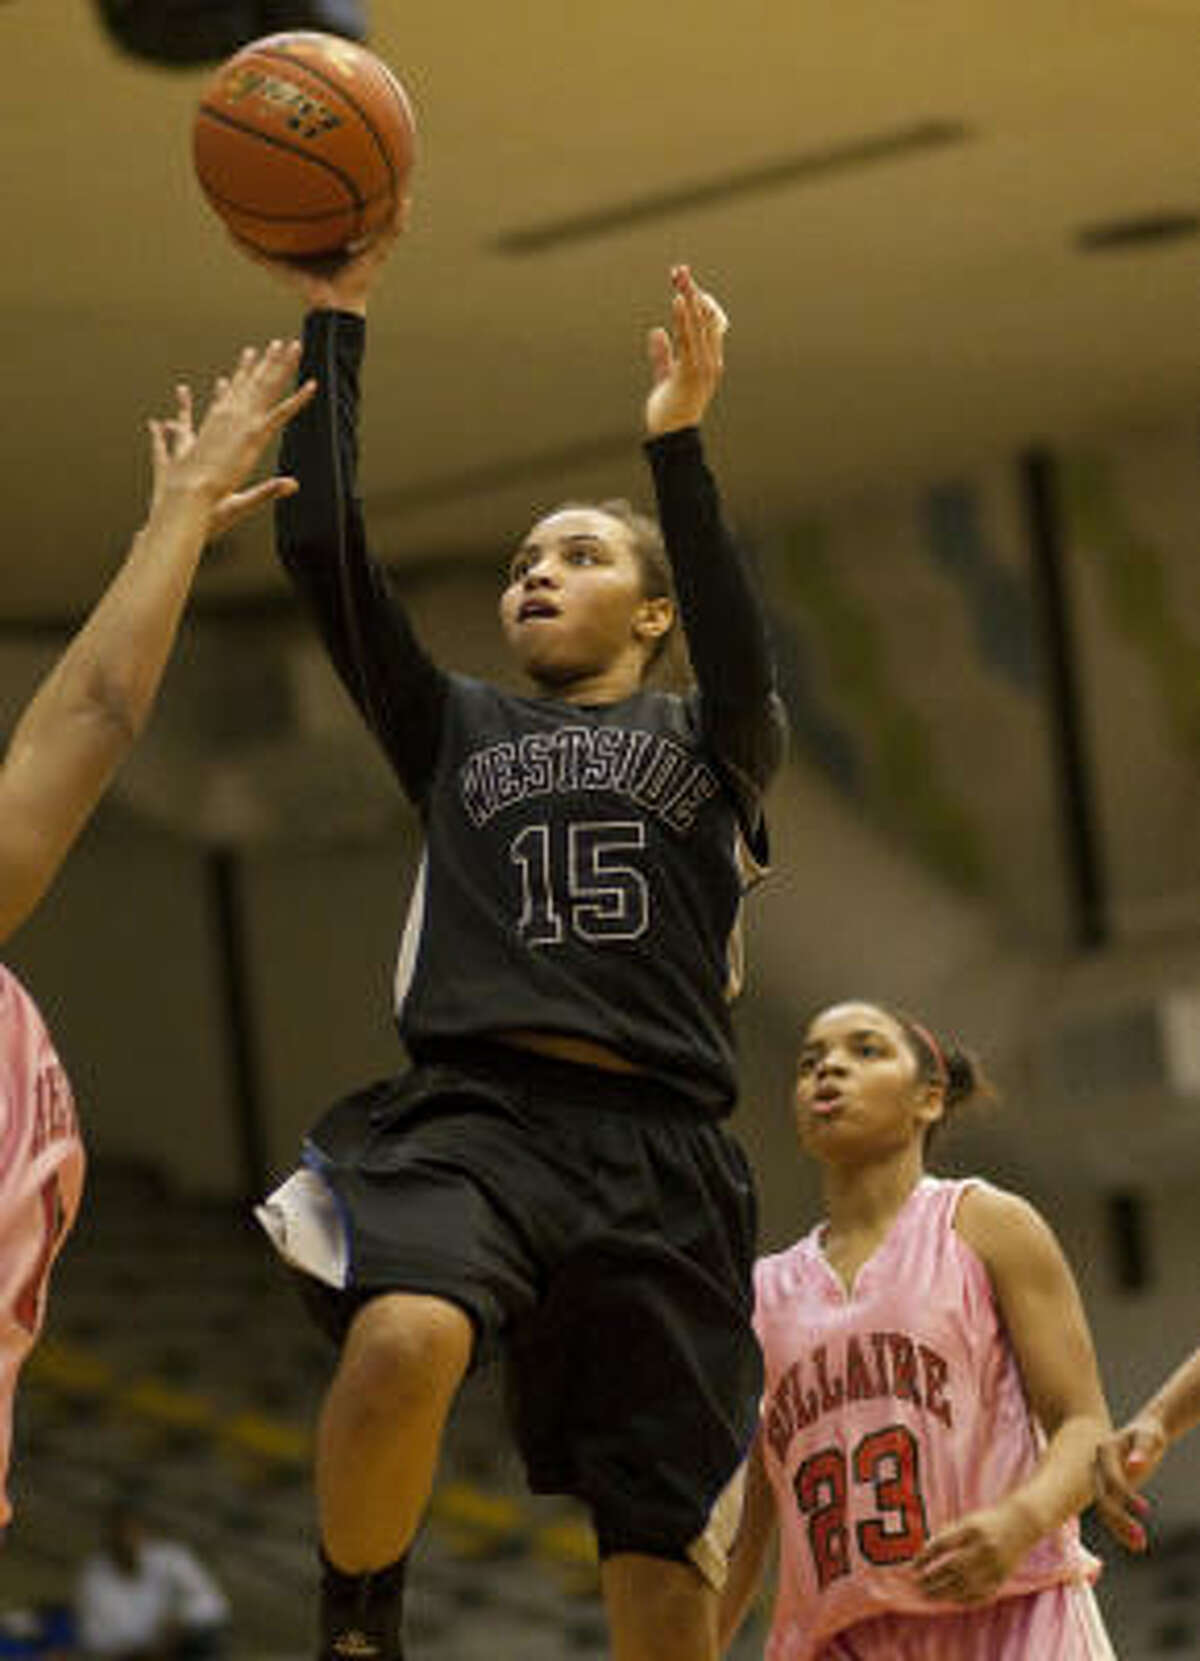 Westside's Tiffany Davis drives to the basket in front of Bellaire's A.J. Alix (23) in the fourth quarter.